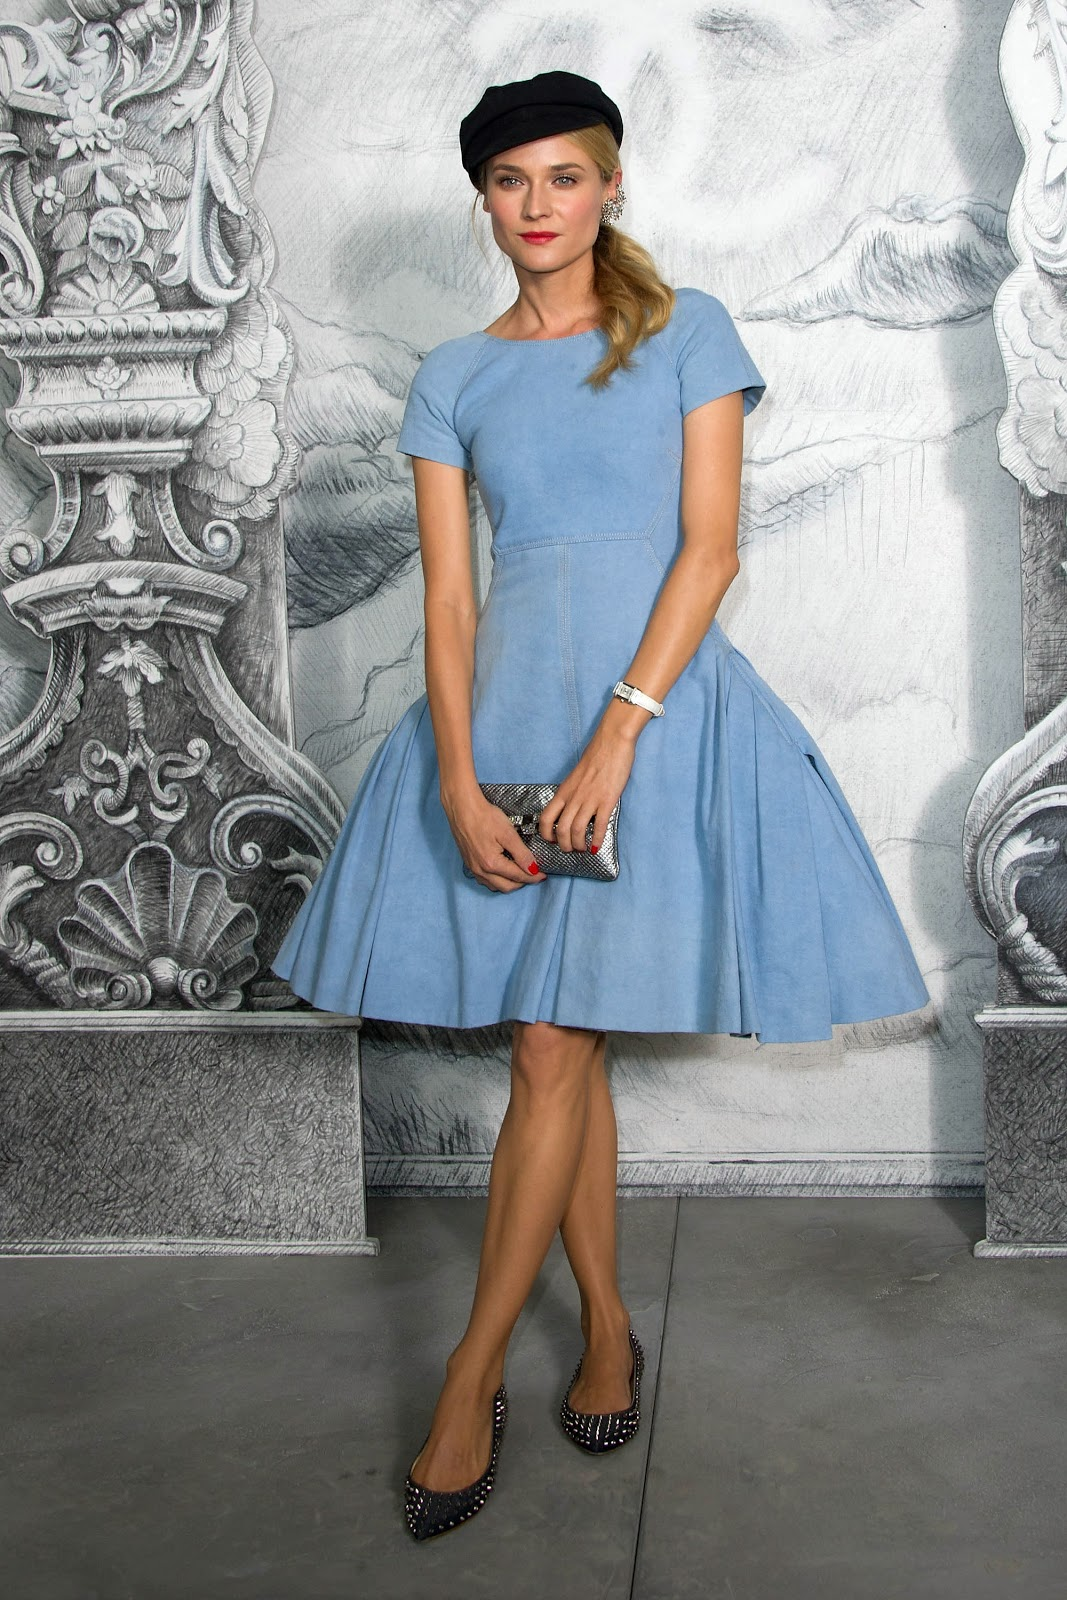 http://3.bp.blogspot.com/-JnrI_jMz3Xk/UP32GoiLYNI/AAAAAAAALW0/Qk1xPyapVMk/s1600/Diane-Kruger-Chanel-Denim-Dress.jpg